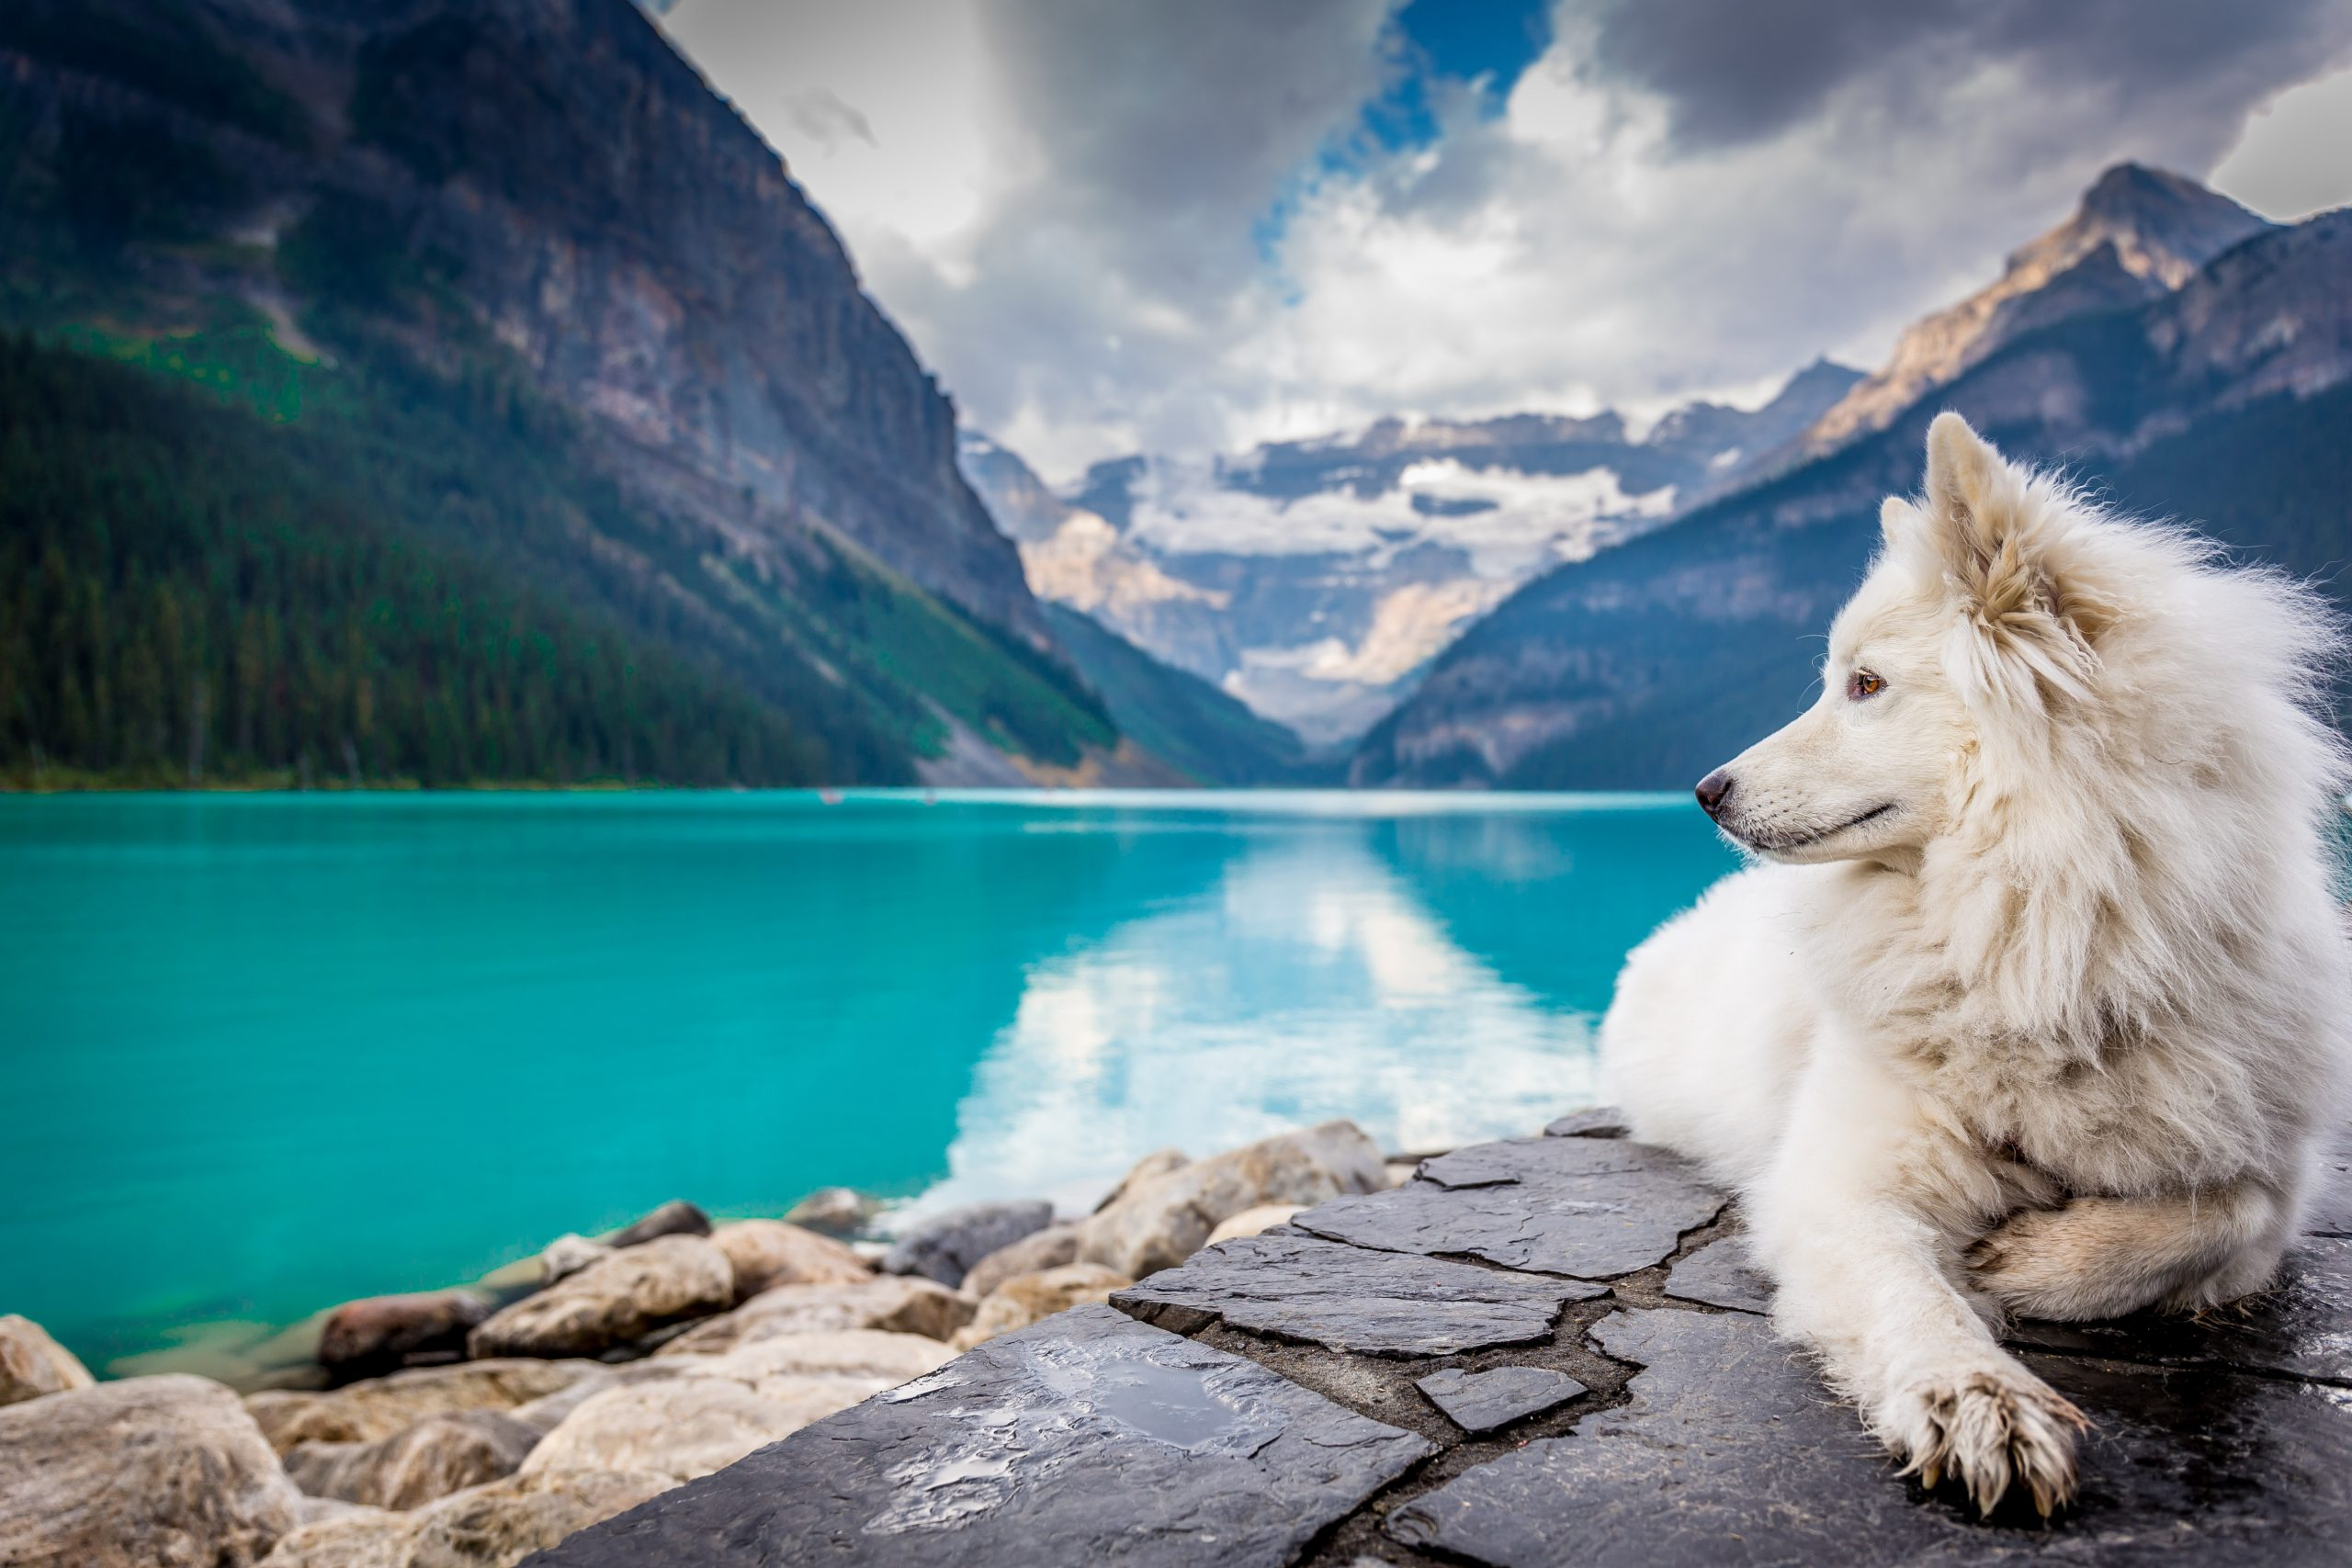 Epic Road Trip Ideas to Take With Your Dog